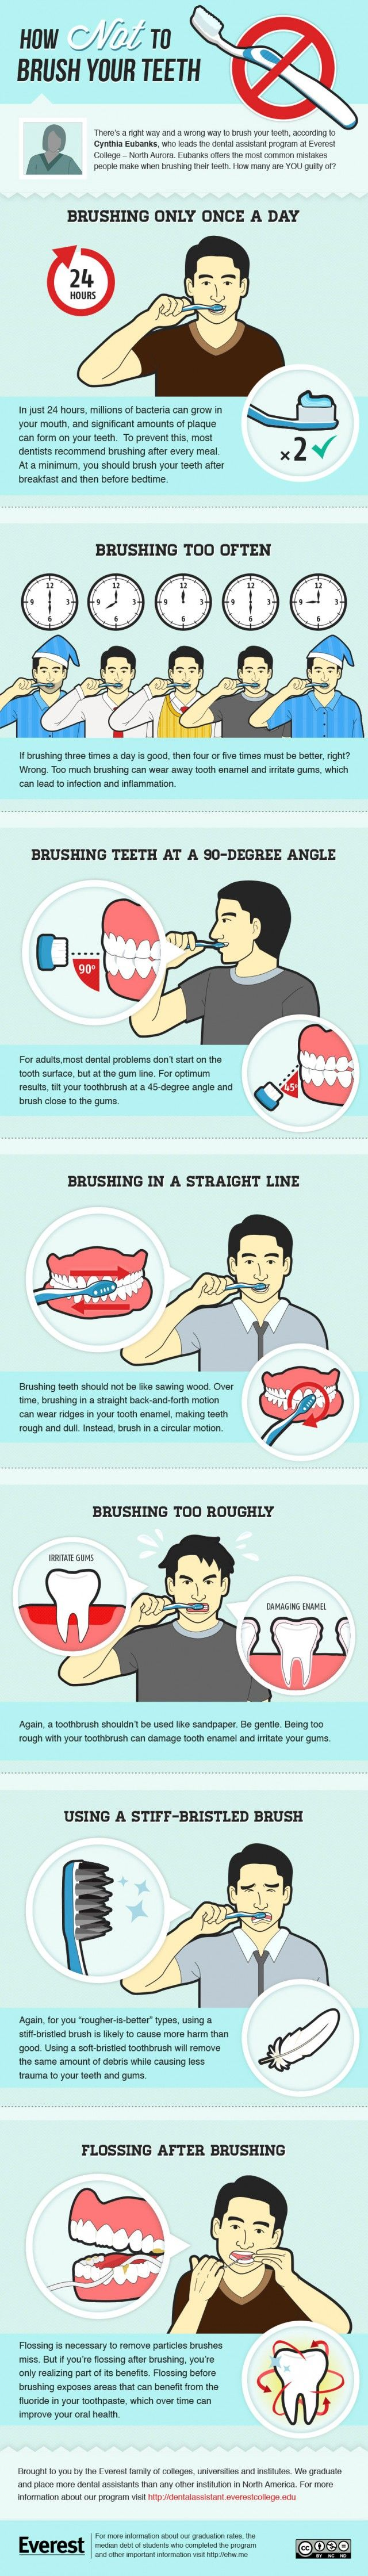 Brushing new toothbrush claims to clean teeth in 6 seconds abc news - Top 25 Best Teeth Ideas On Pinterest White Teeth Remedies White Teeth And White Teeth Tips